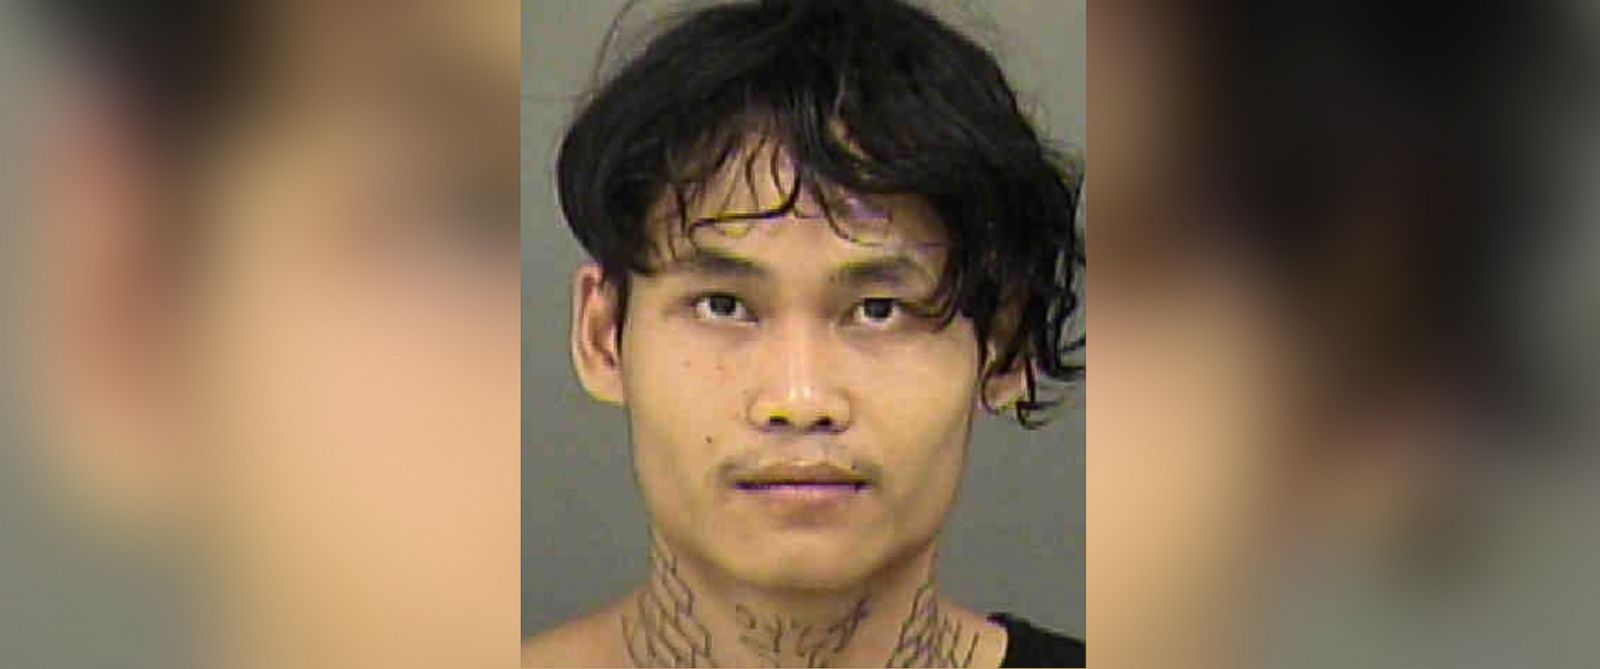 PHOTO: Tun Lon Sein, 22, was arrested in Charlotte, N.C. on May 25, 2017 for allegedly interfering with flight crew members and attendants.